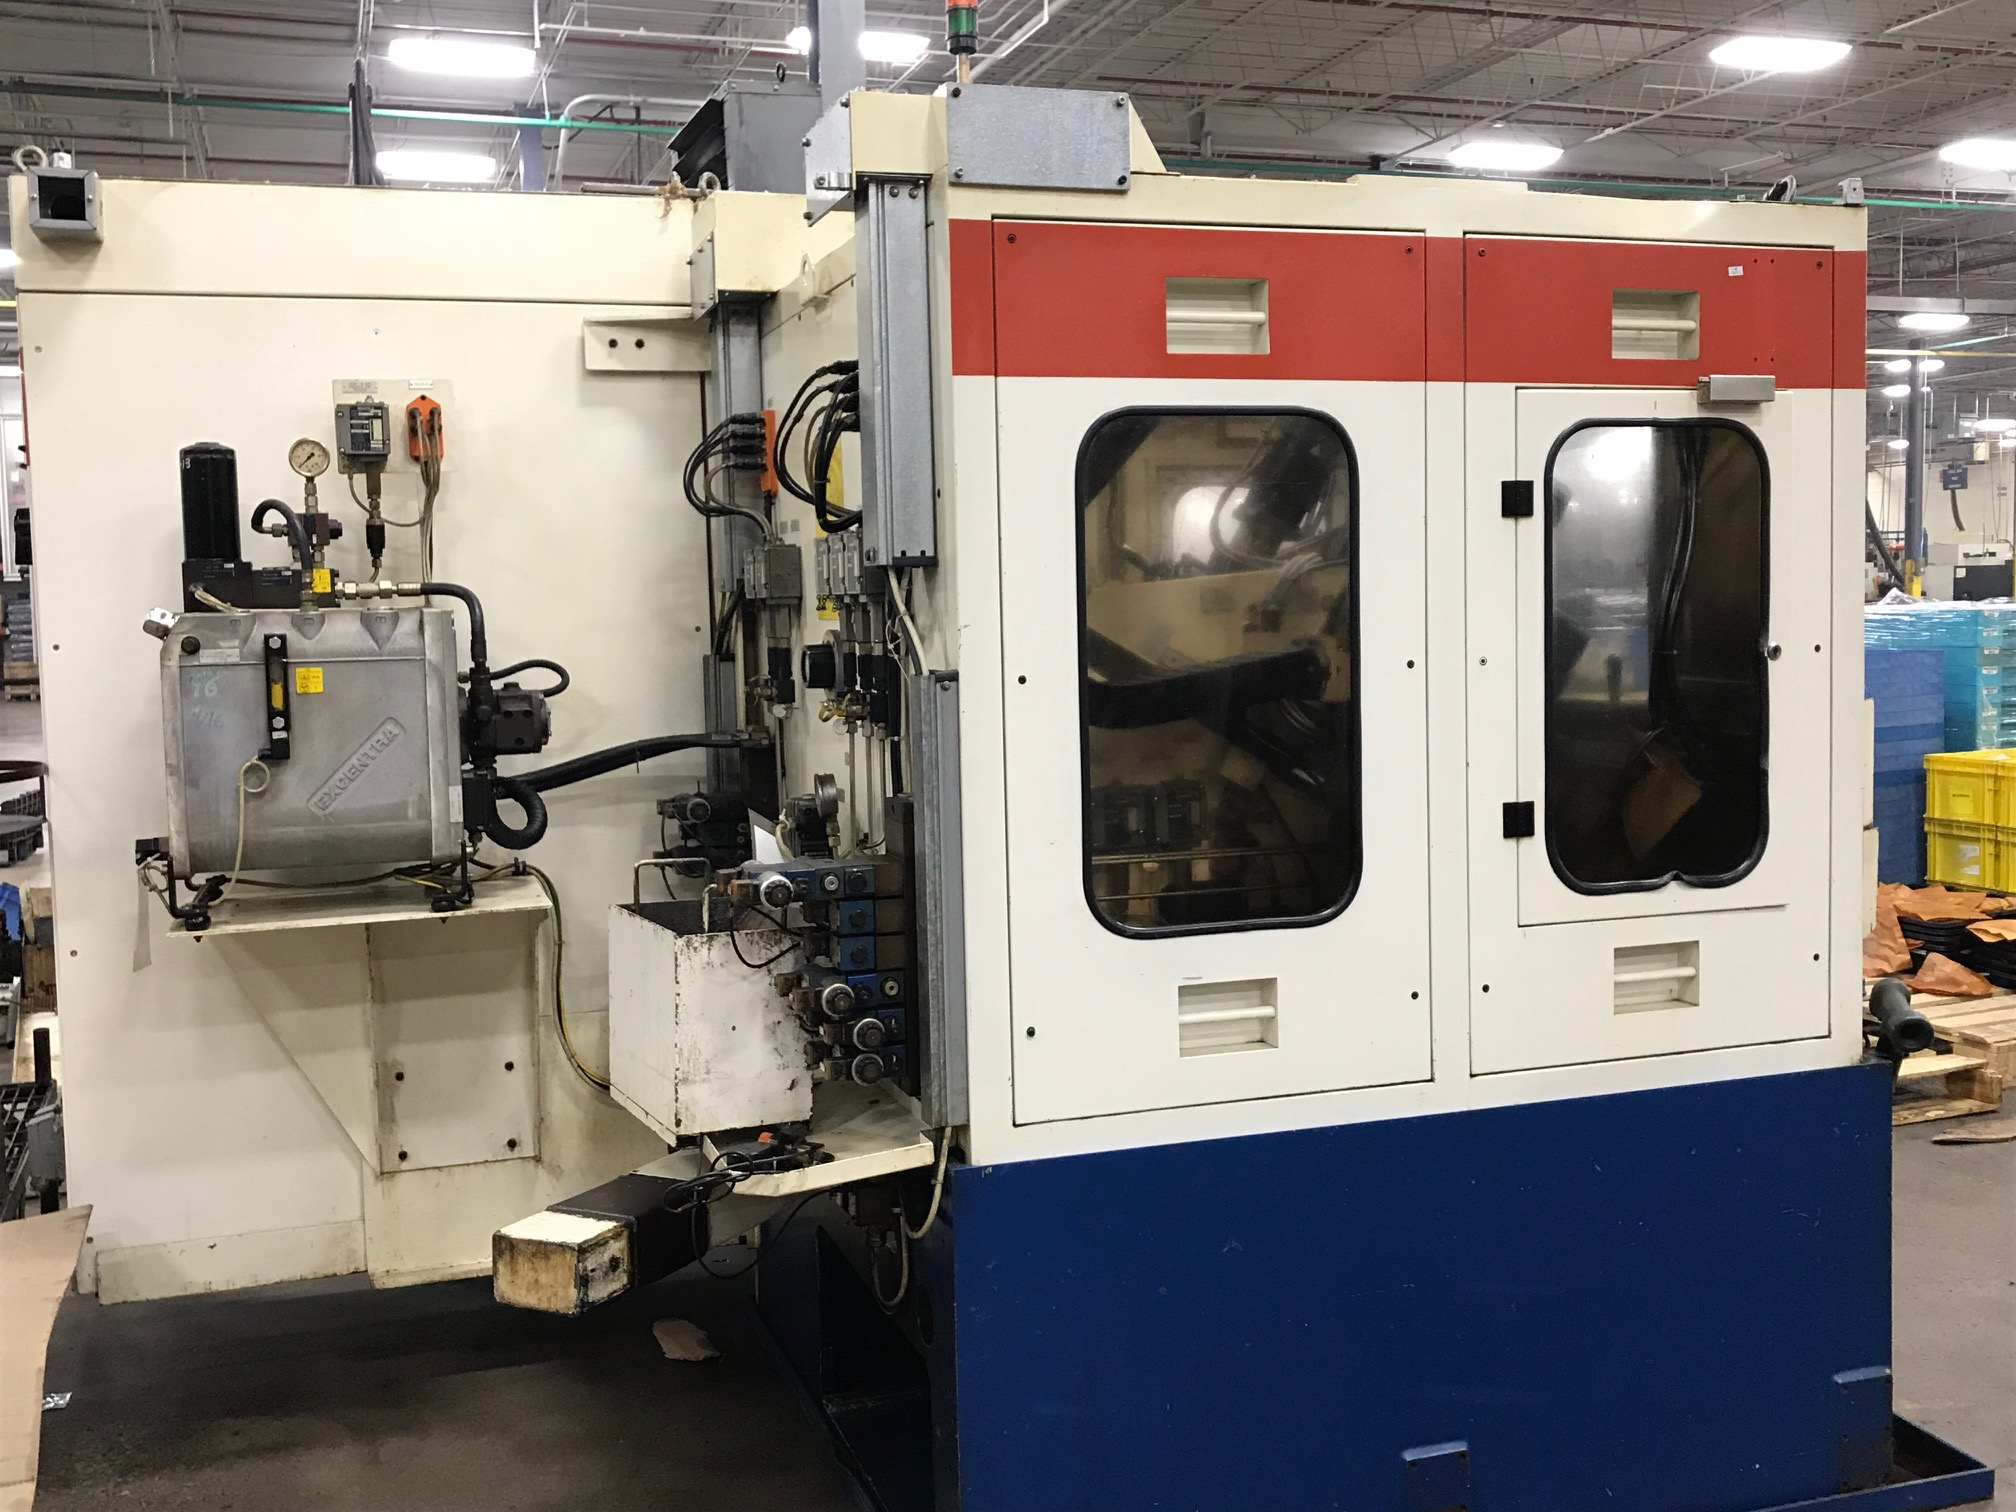 Lot 5 - RASO-REDWING CNC GEAR SHAVER, MODEL RASO 200 A6, SN 3851, YEAR 2002, LOCATION IL